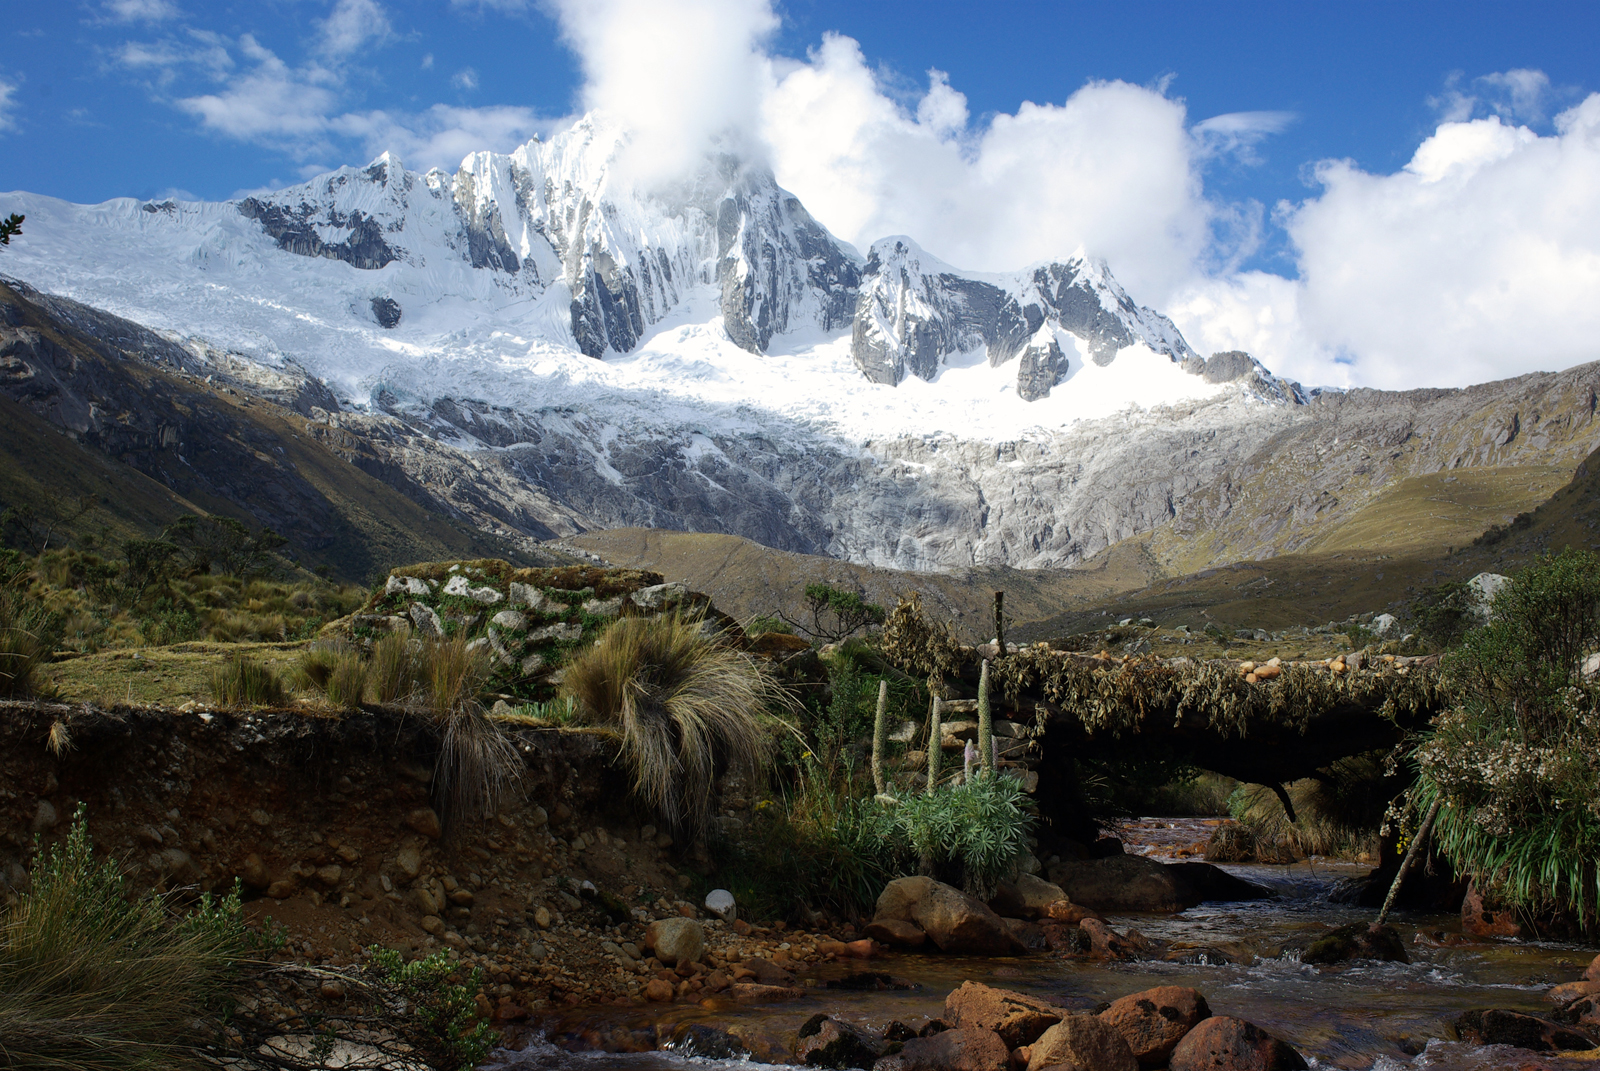 View of mountainside of Cordillera Blanca, Peru (Source: MacDawg/Creative Commons).